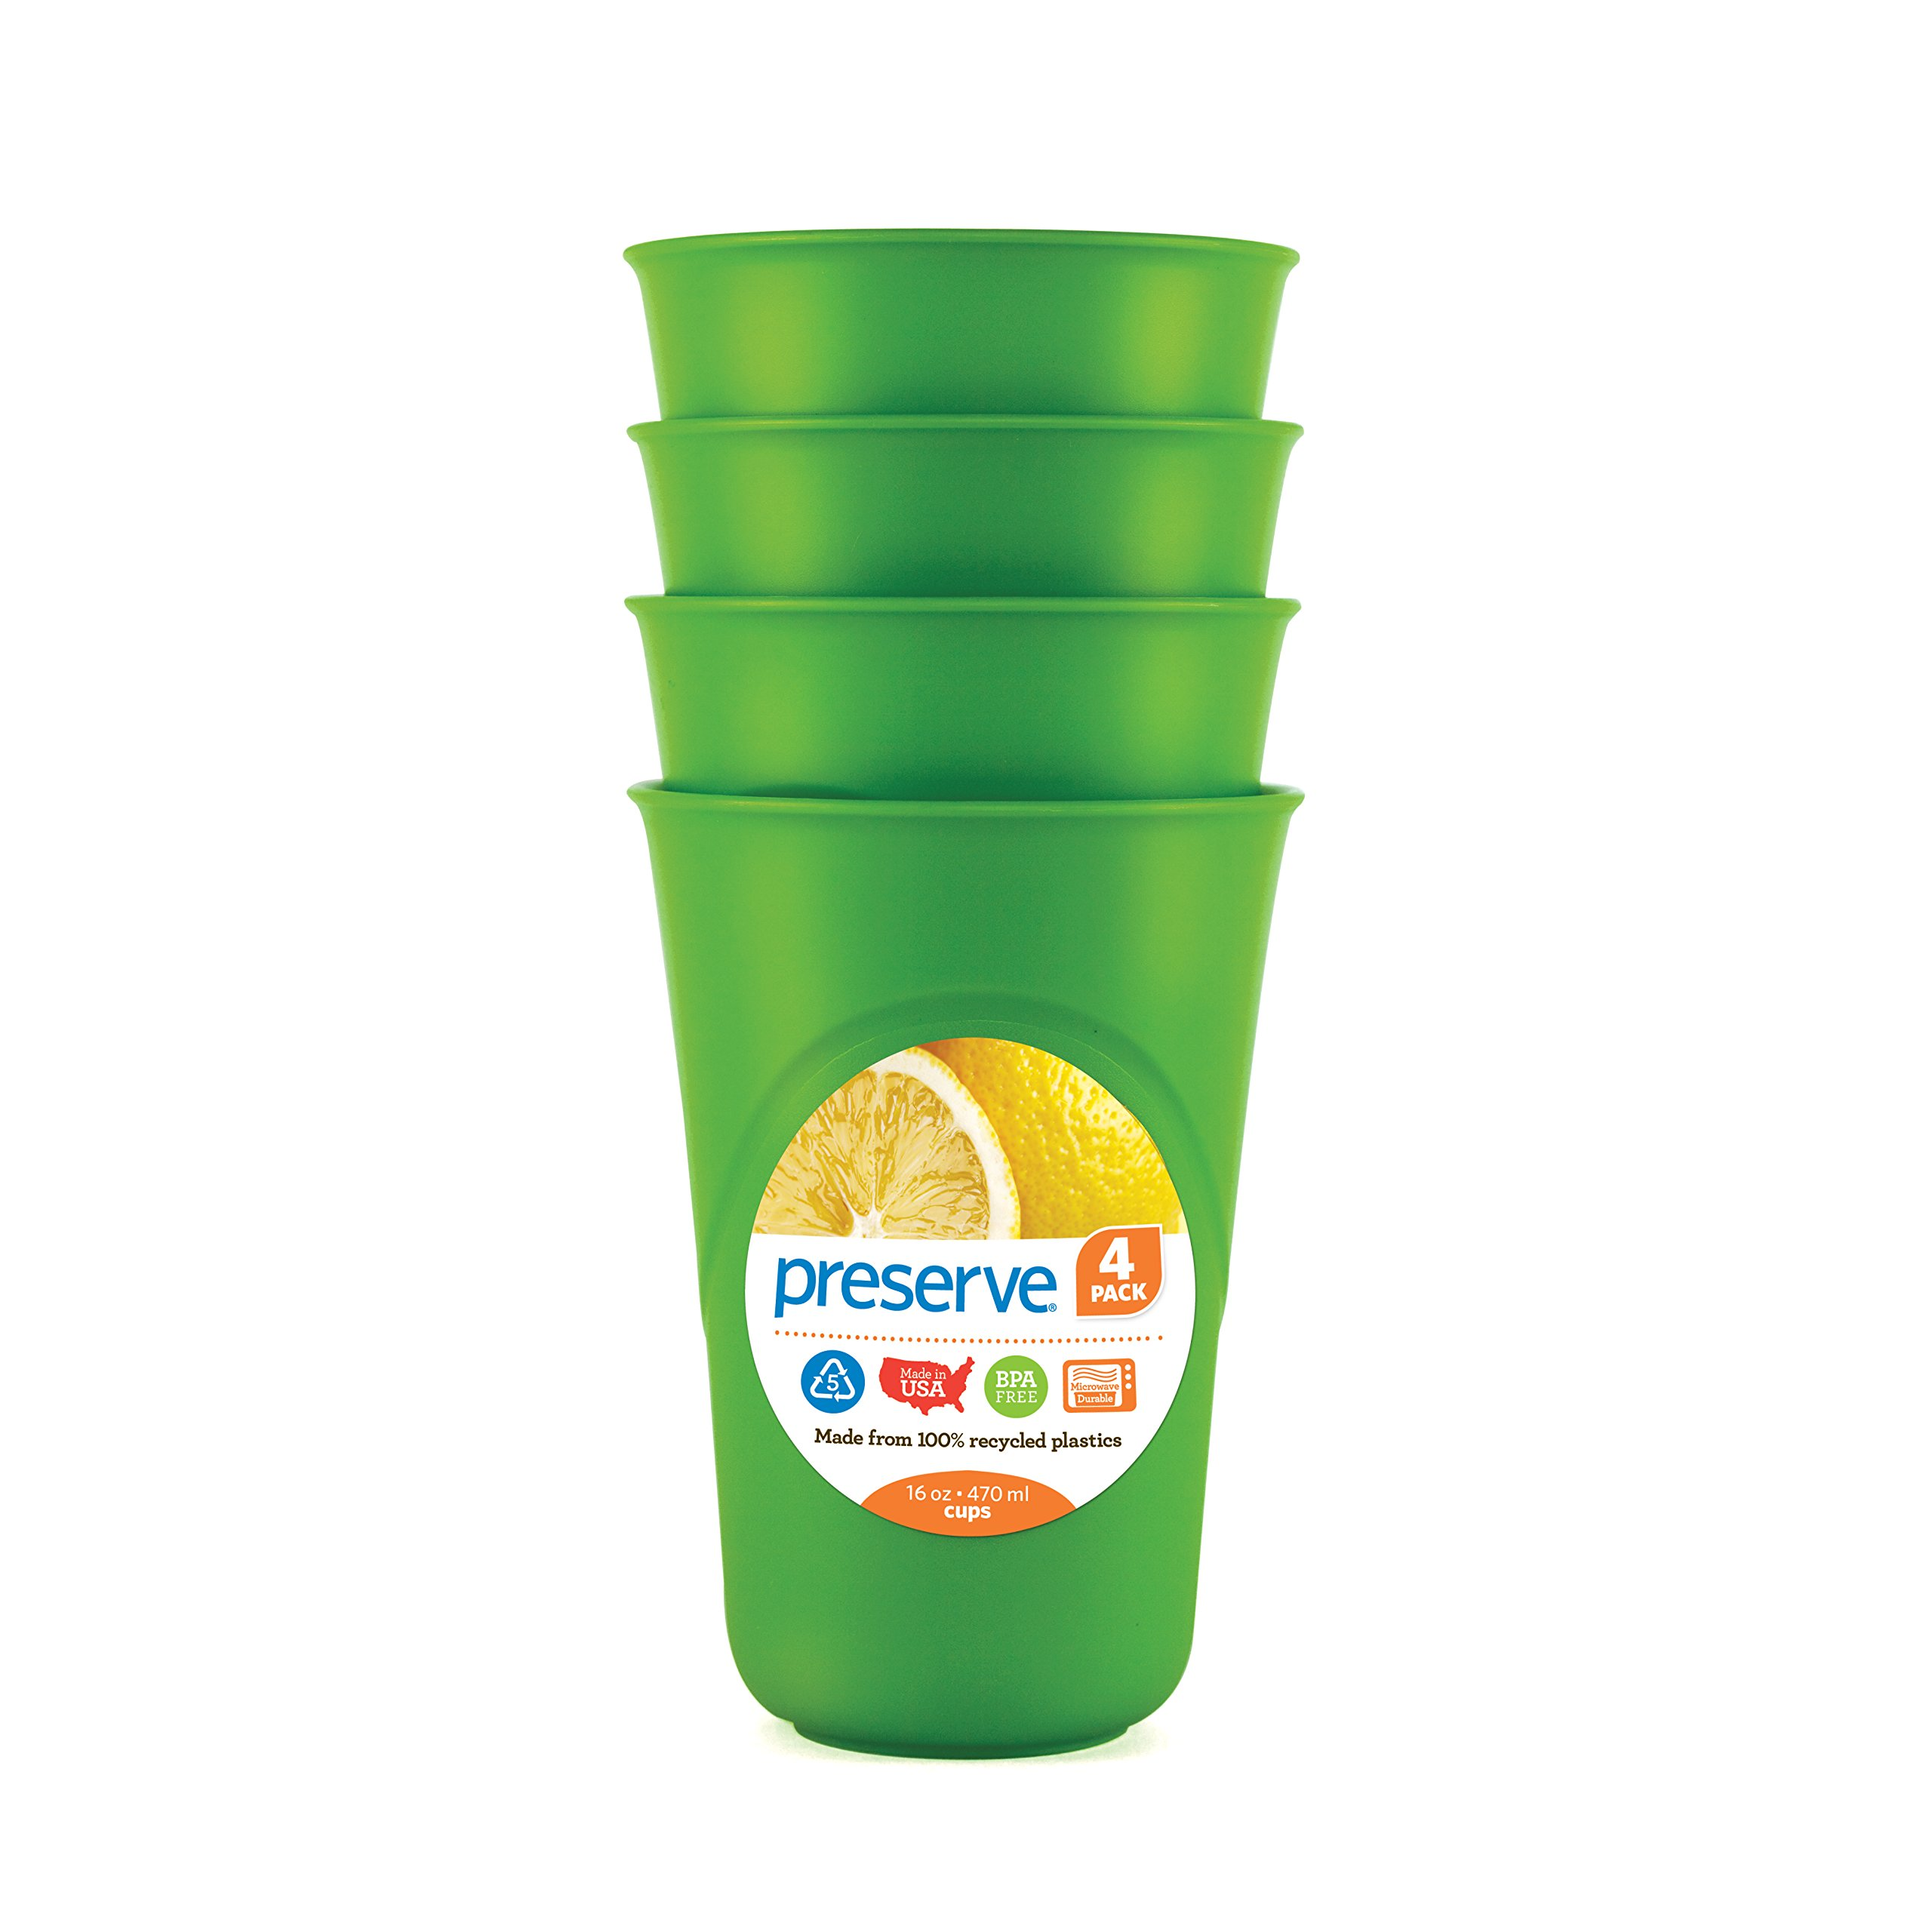 Preserve Everyday 16 Ounce Cups, Set of 4, Apple Green by Preseve